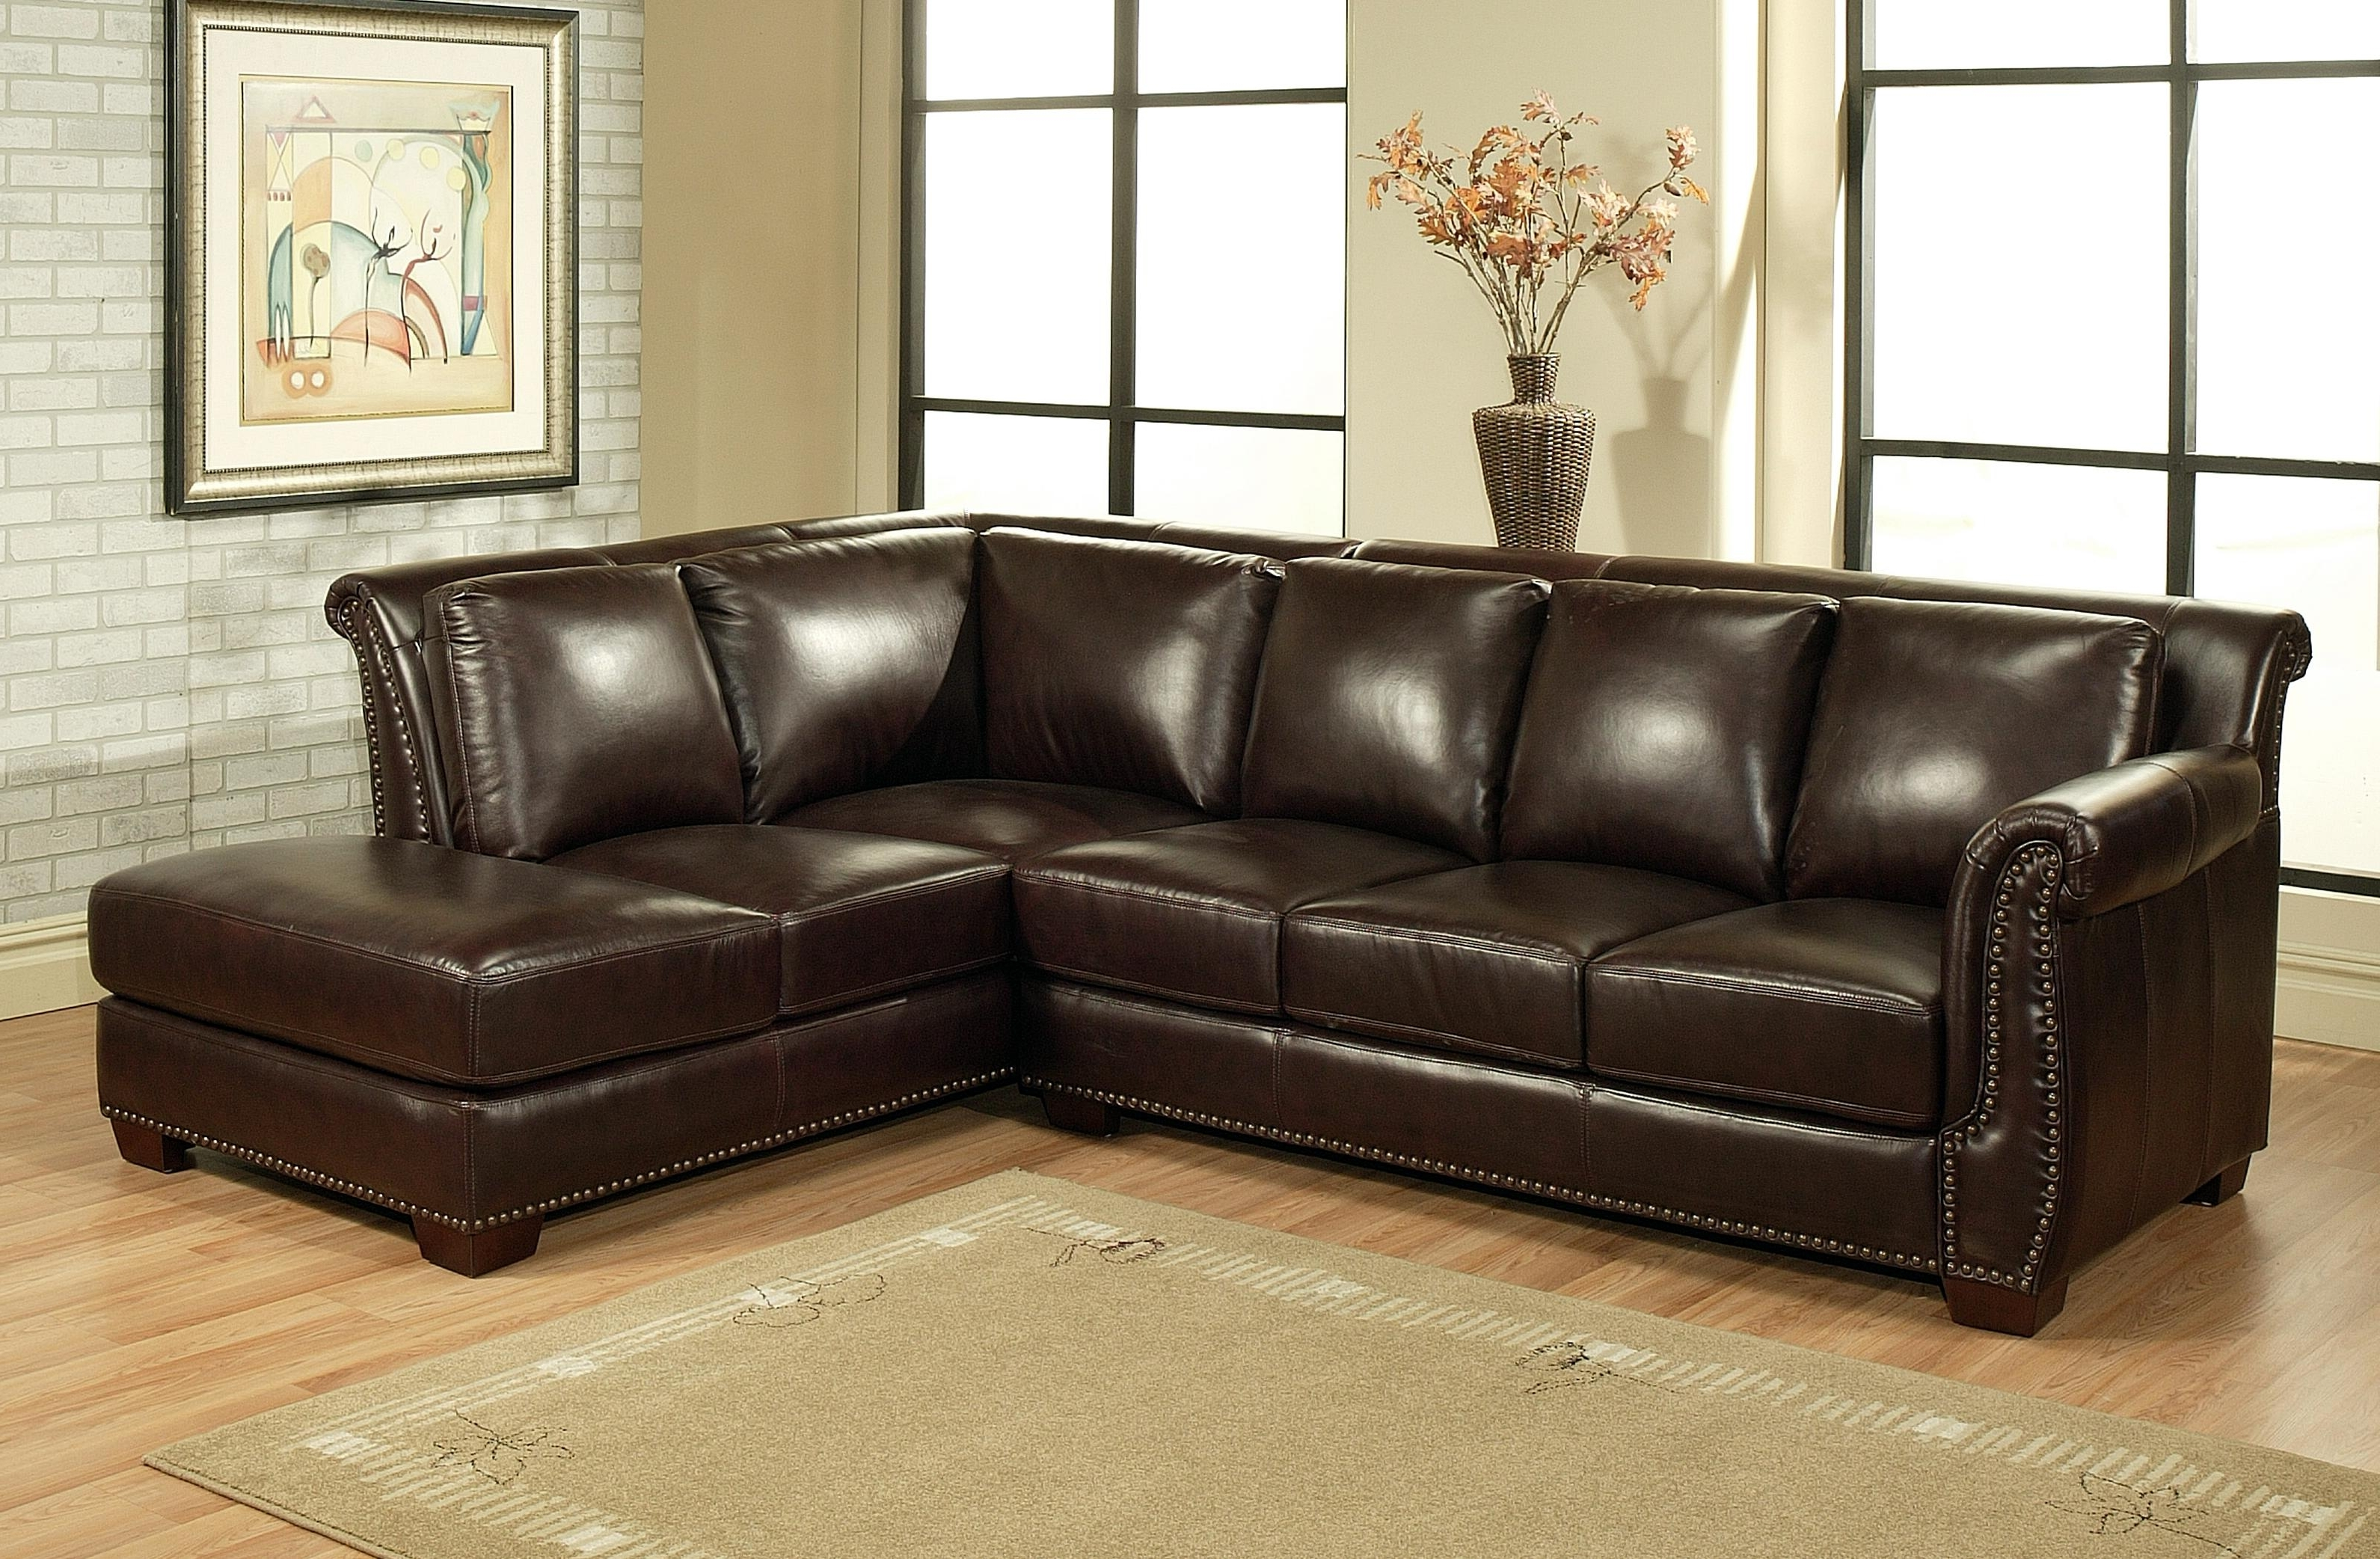 Sectional Sofas At Calgary With Favorite Best Leather Sectional Sofas 61 Modern Sofa Ideas With Leather (View 18 of 20)